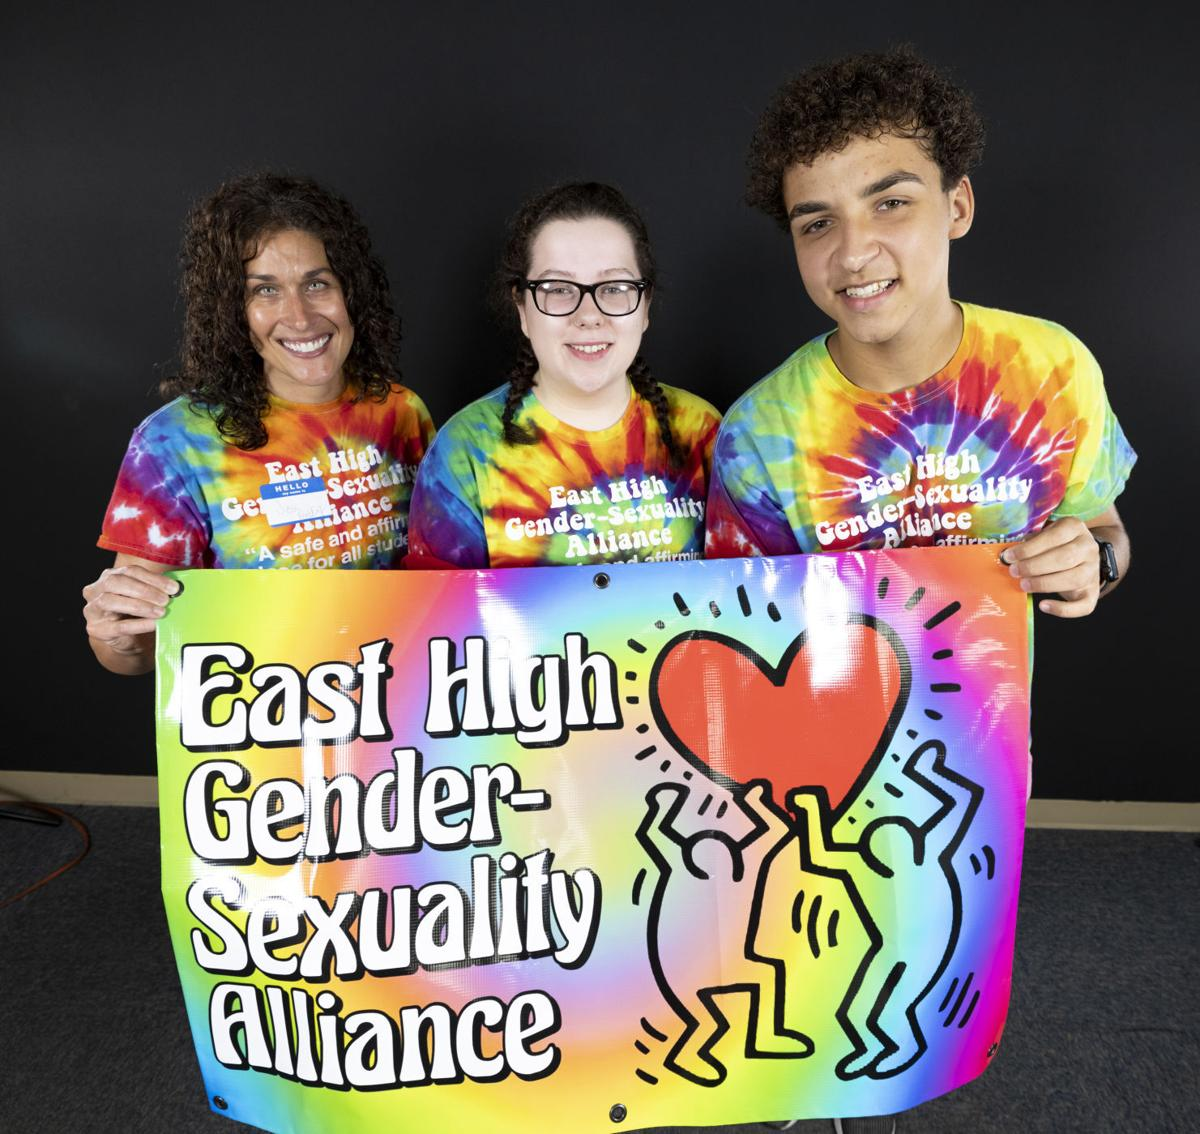 East High School's Gender-Sexuality Alliance